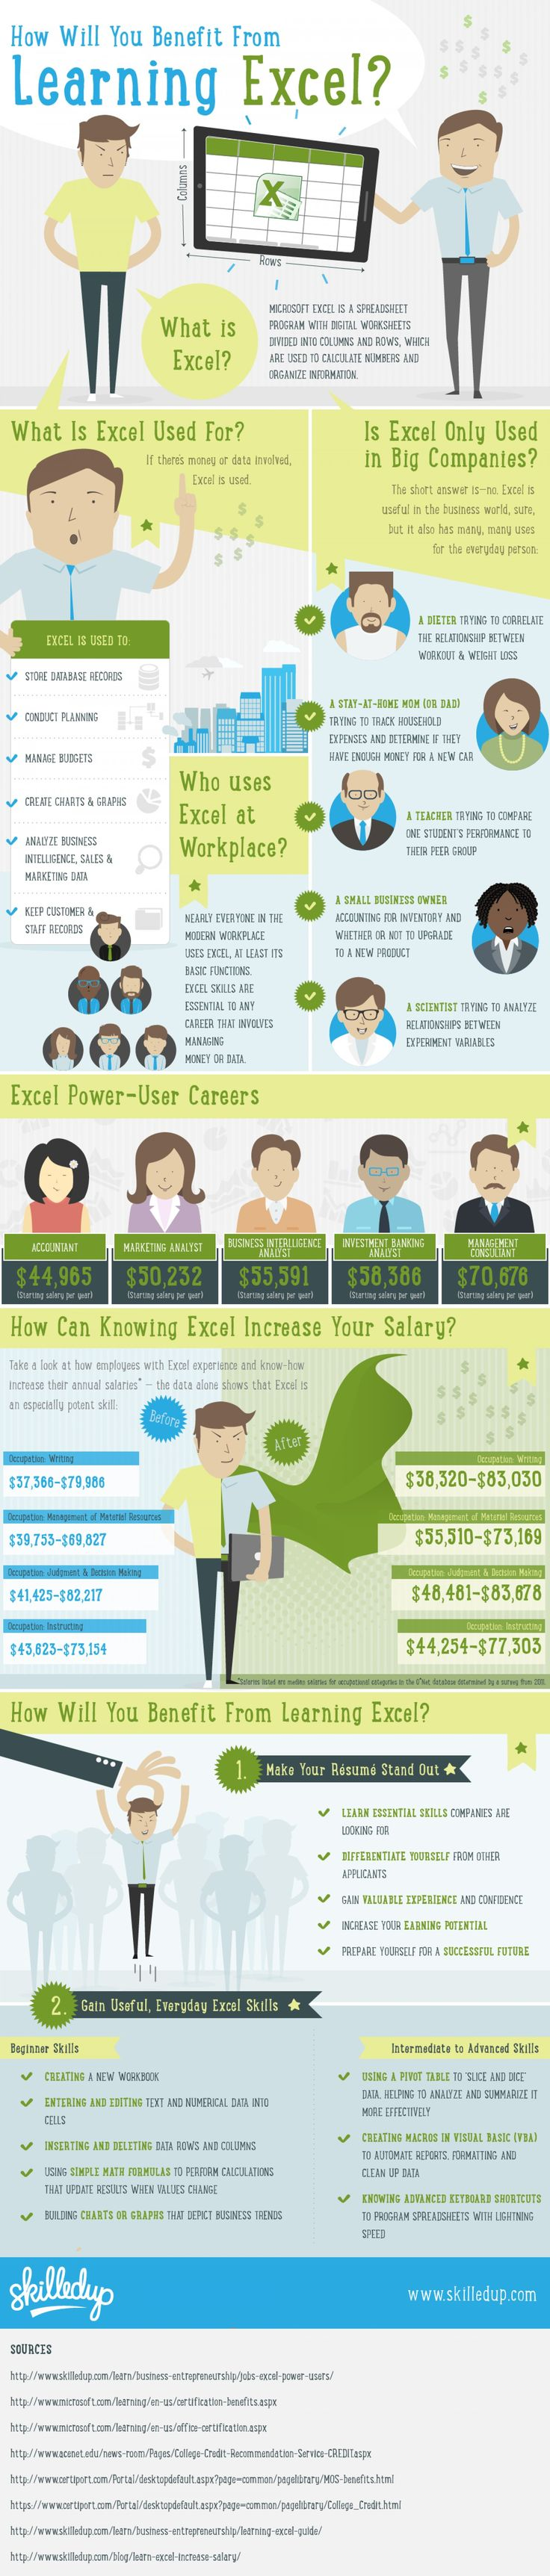 All images used with permission by the artist 169 microsoft - The Career Value Of Microsoft Excel Infographic